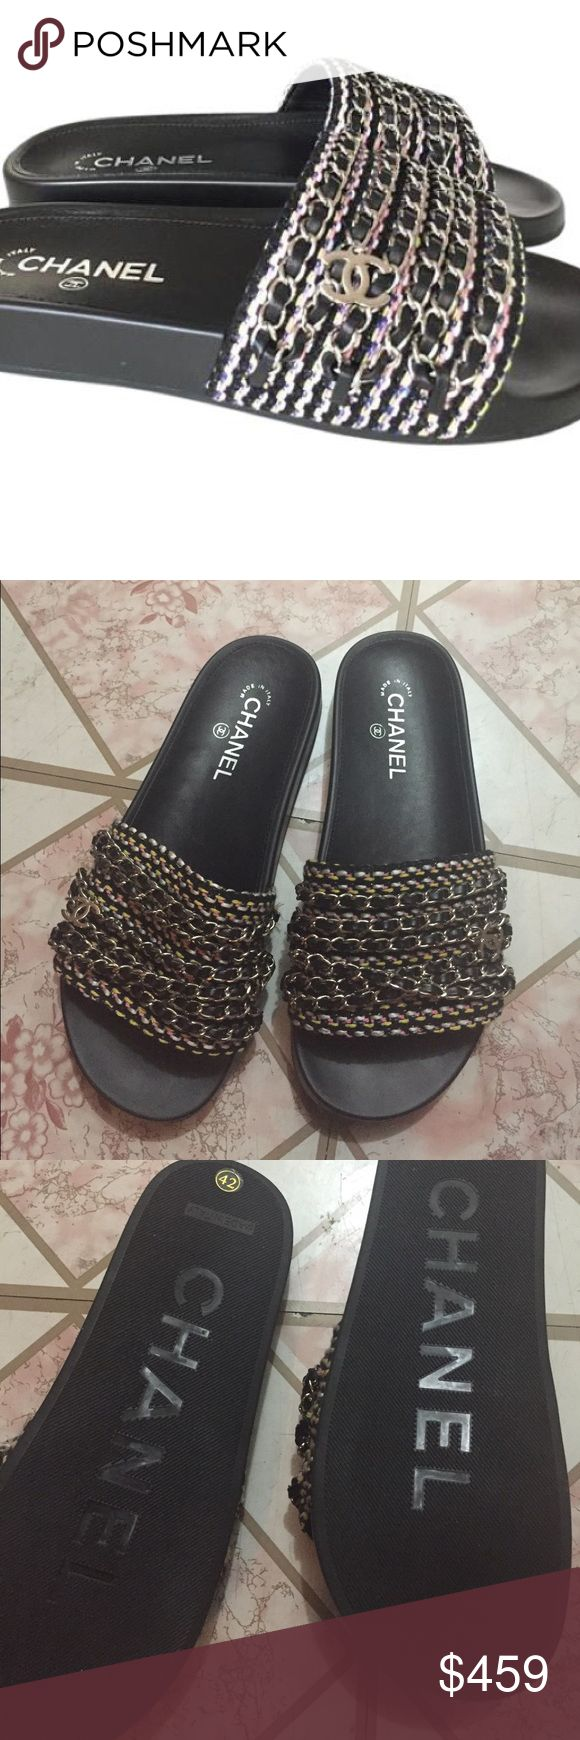 Shoes Brand new Chanel sliders !! 100% high qaulity !! No hate just looking out for my ladies who loves CC !! The authen retails for $2,000 and is currently sold out!! These fit true size 10-10.5 as seen on many celeberties like Kylie Jenner & black chyna !! NO TRADE! FIRM on price !! First come first serve !! NOT FROM LISTED BRAND Zara Shoes